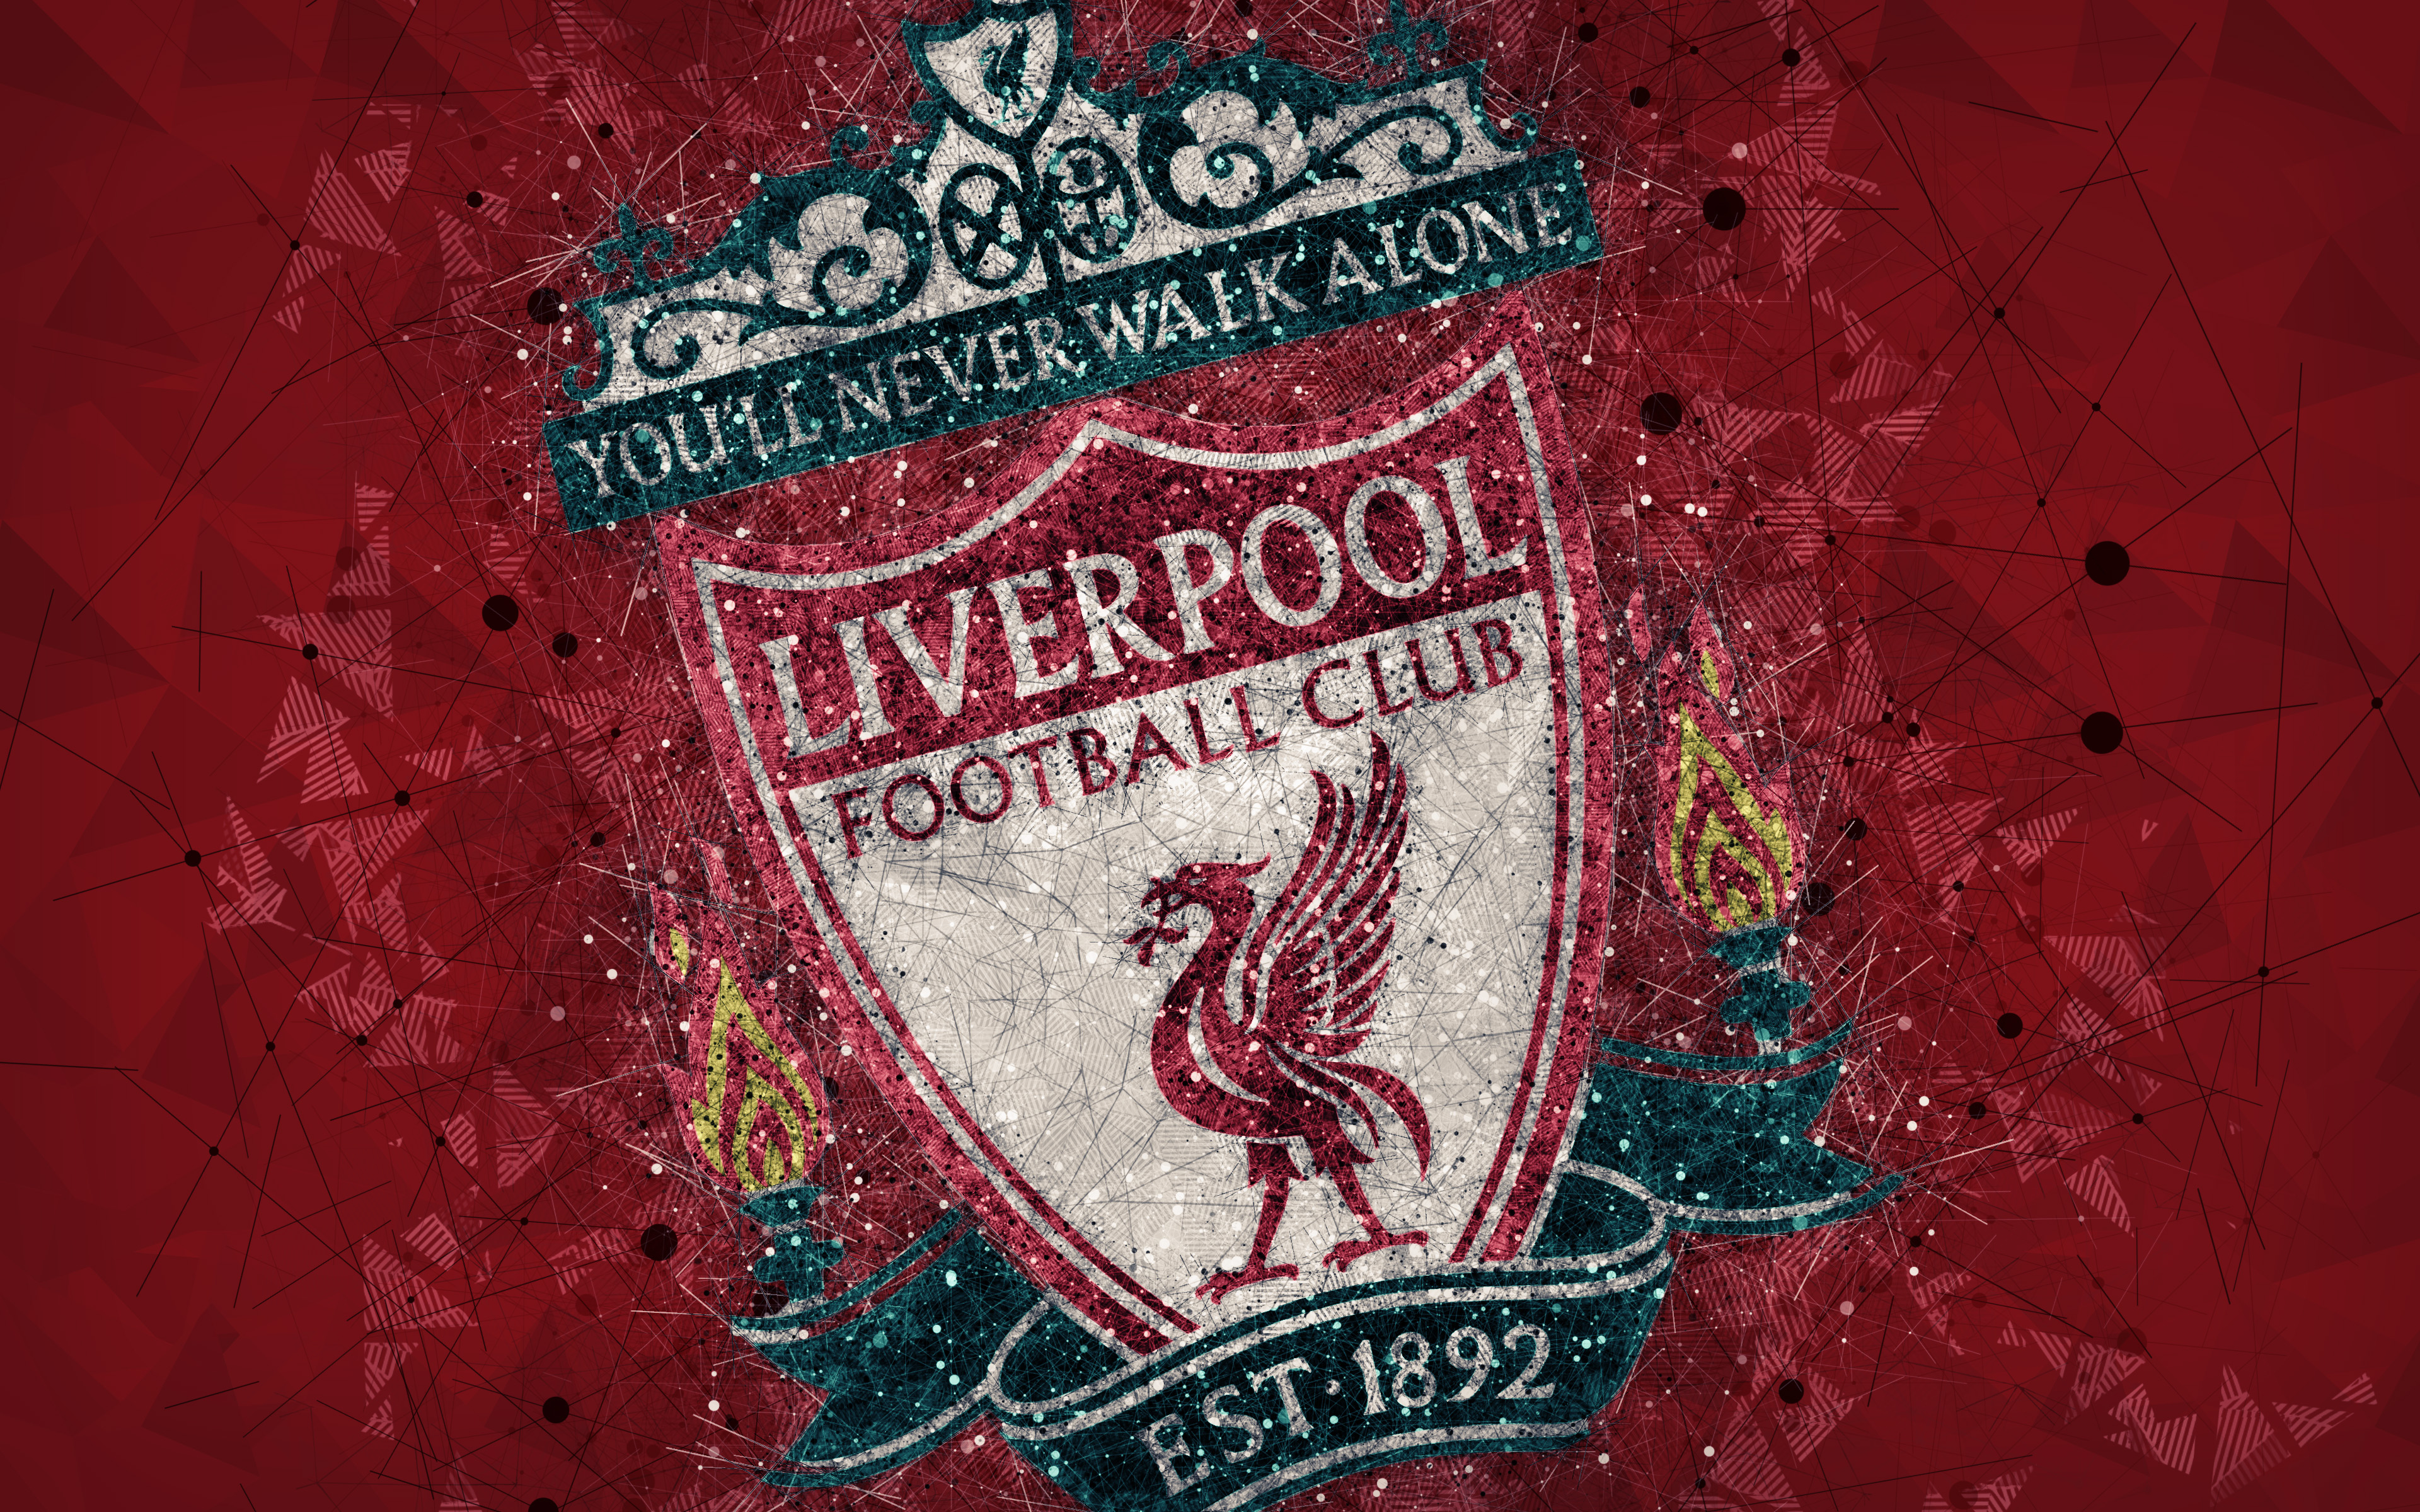 Liverpool Logo 4k Ultra Hd Wallpaper Background Image 3840x2400 Id 969474 Wallpaper Abyss